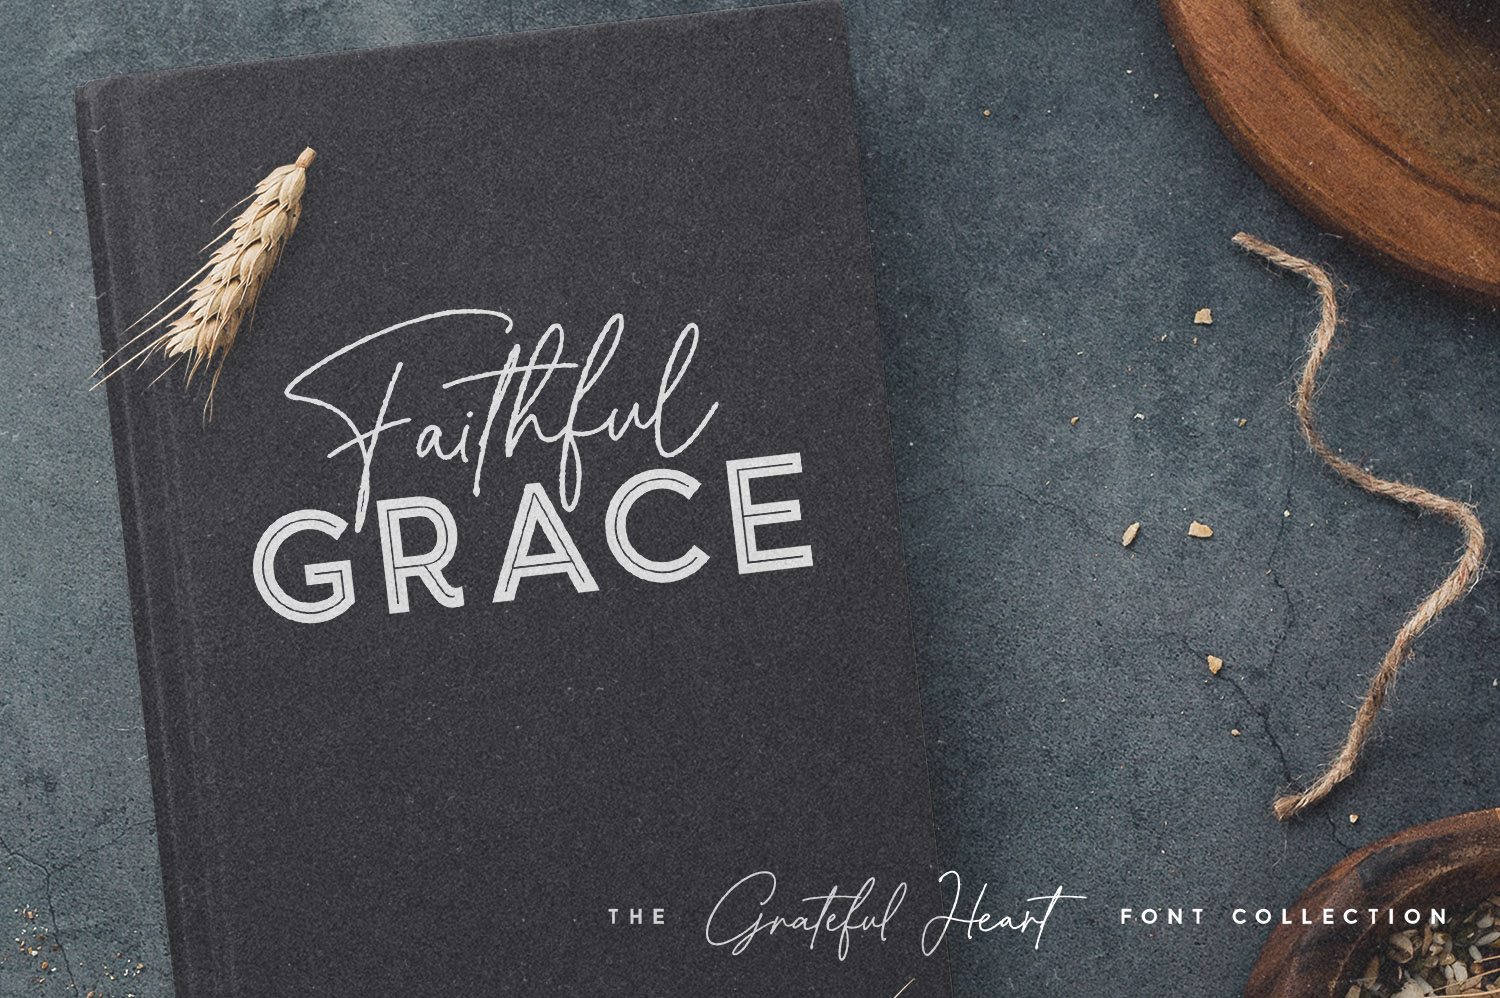 Greatful Heart Font Collection